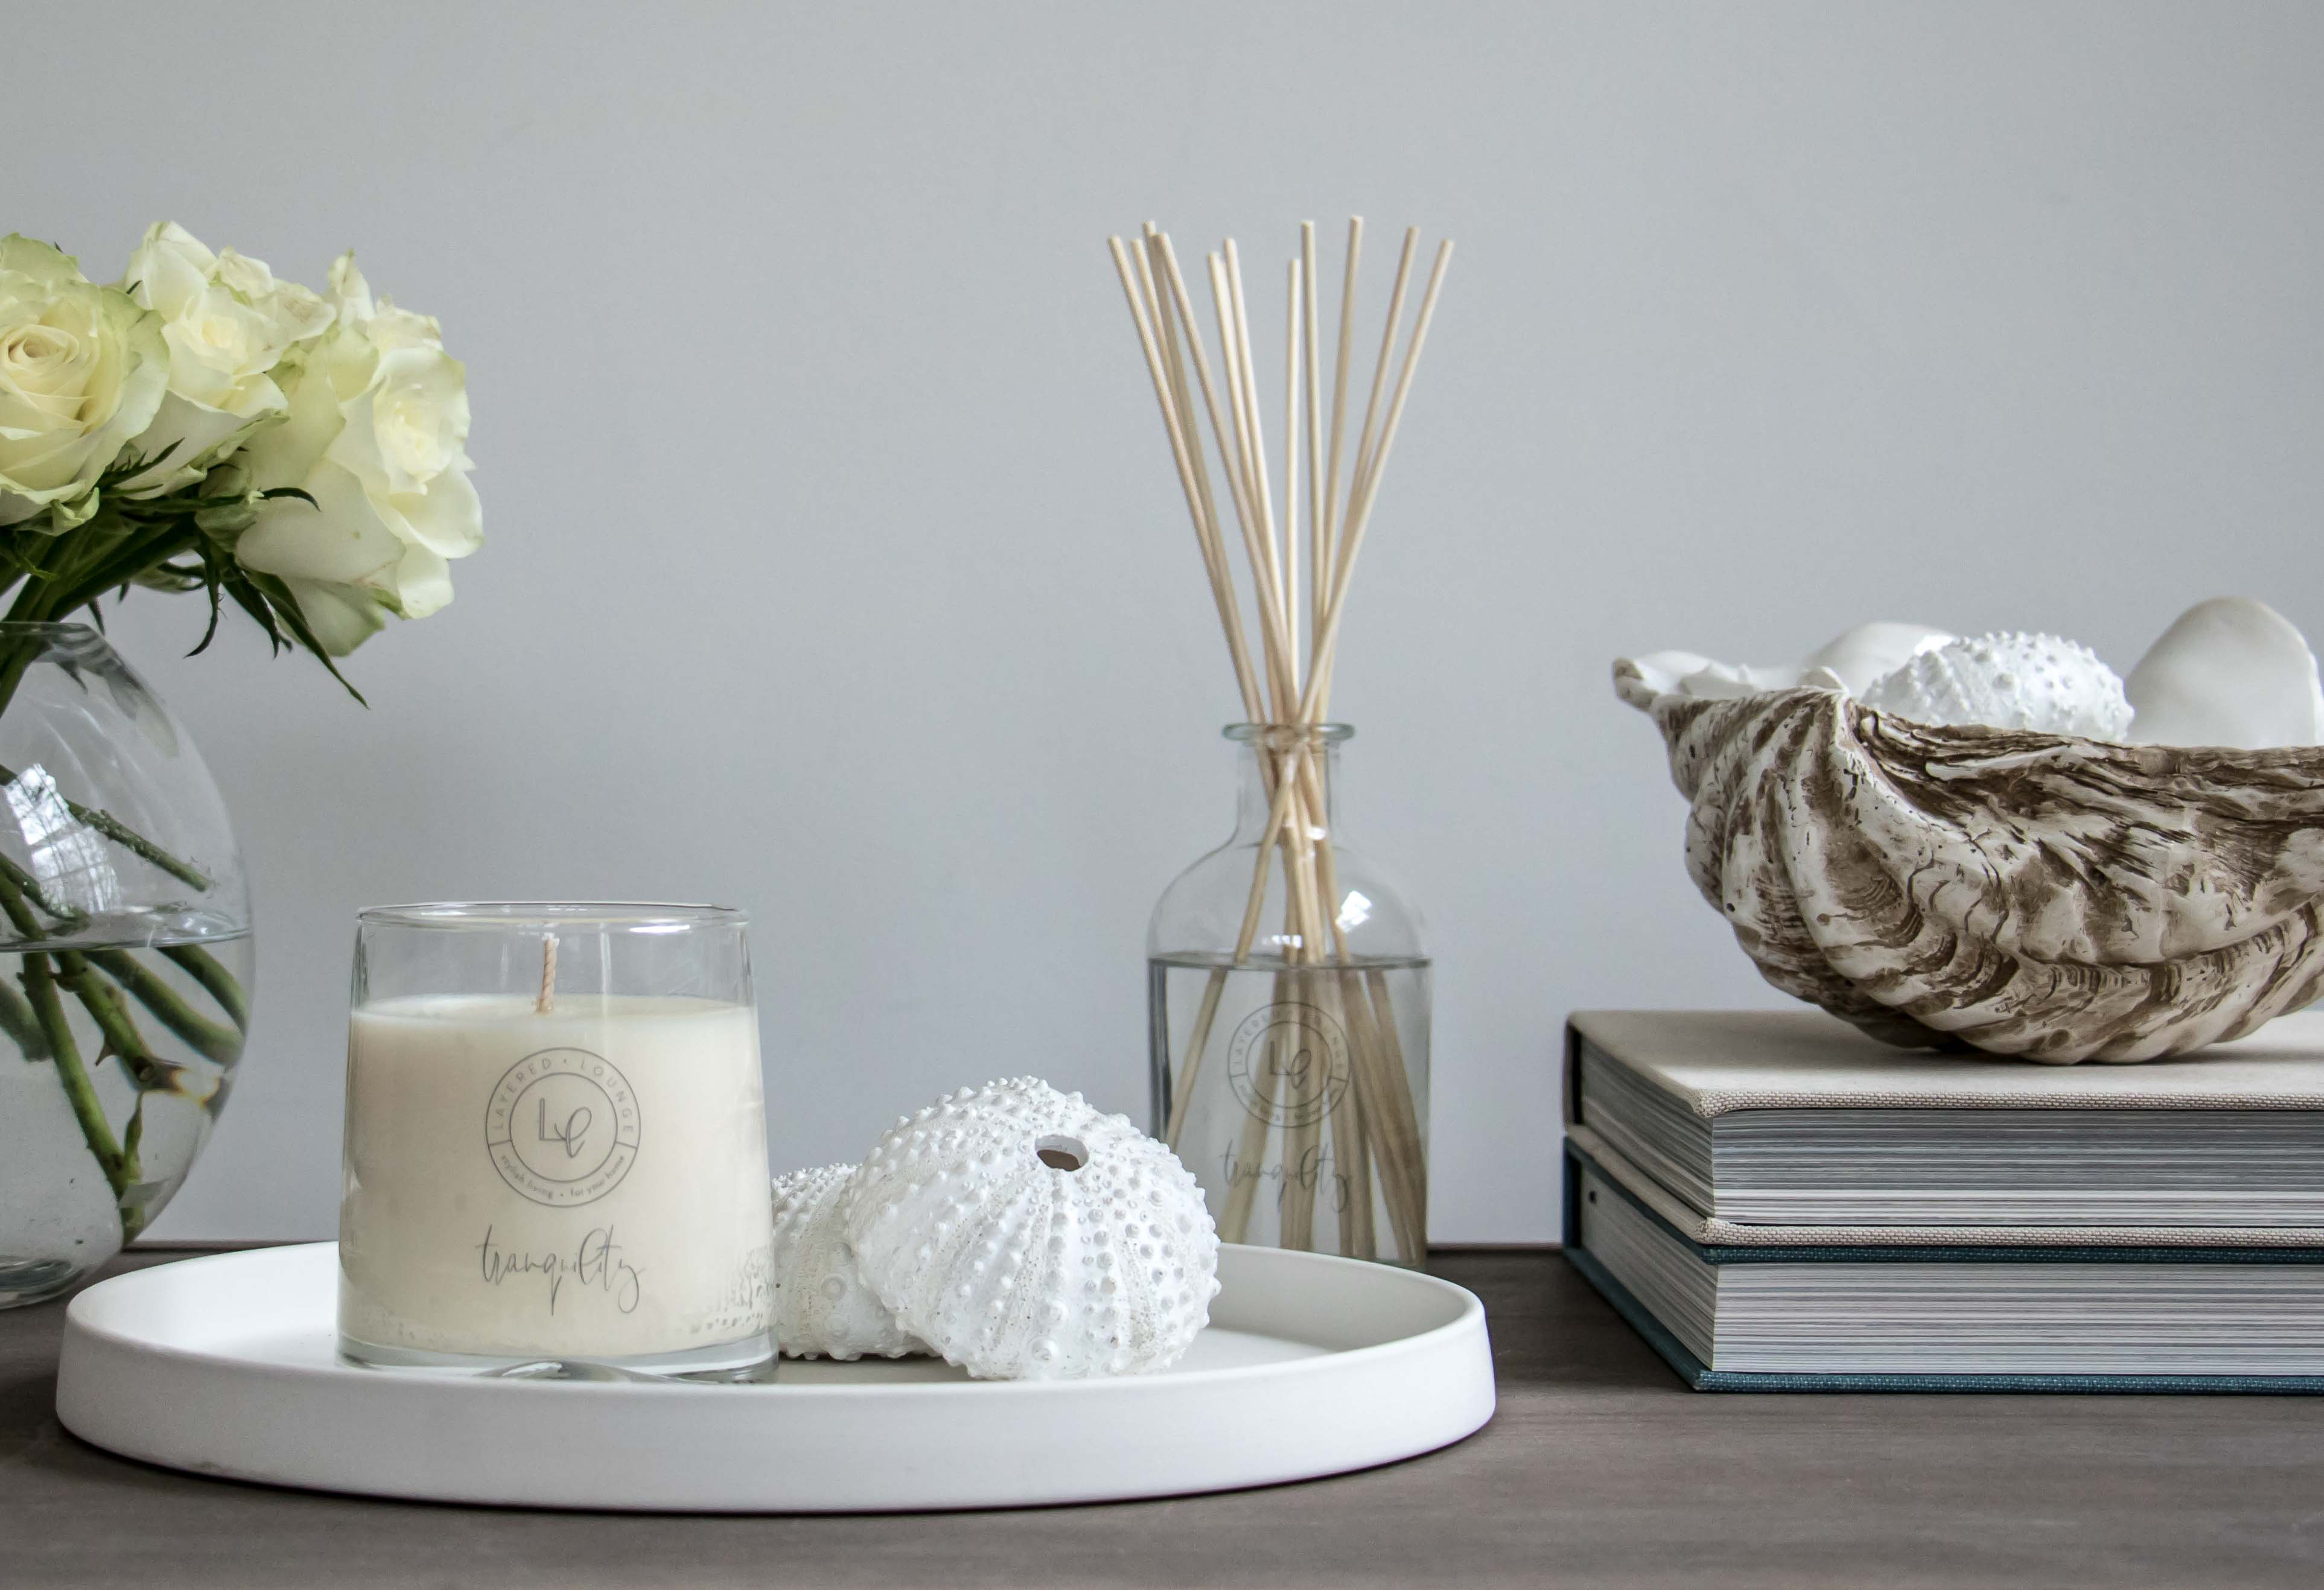 Tranquility Scented Candle & Diffuser by Layered Lounge